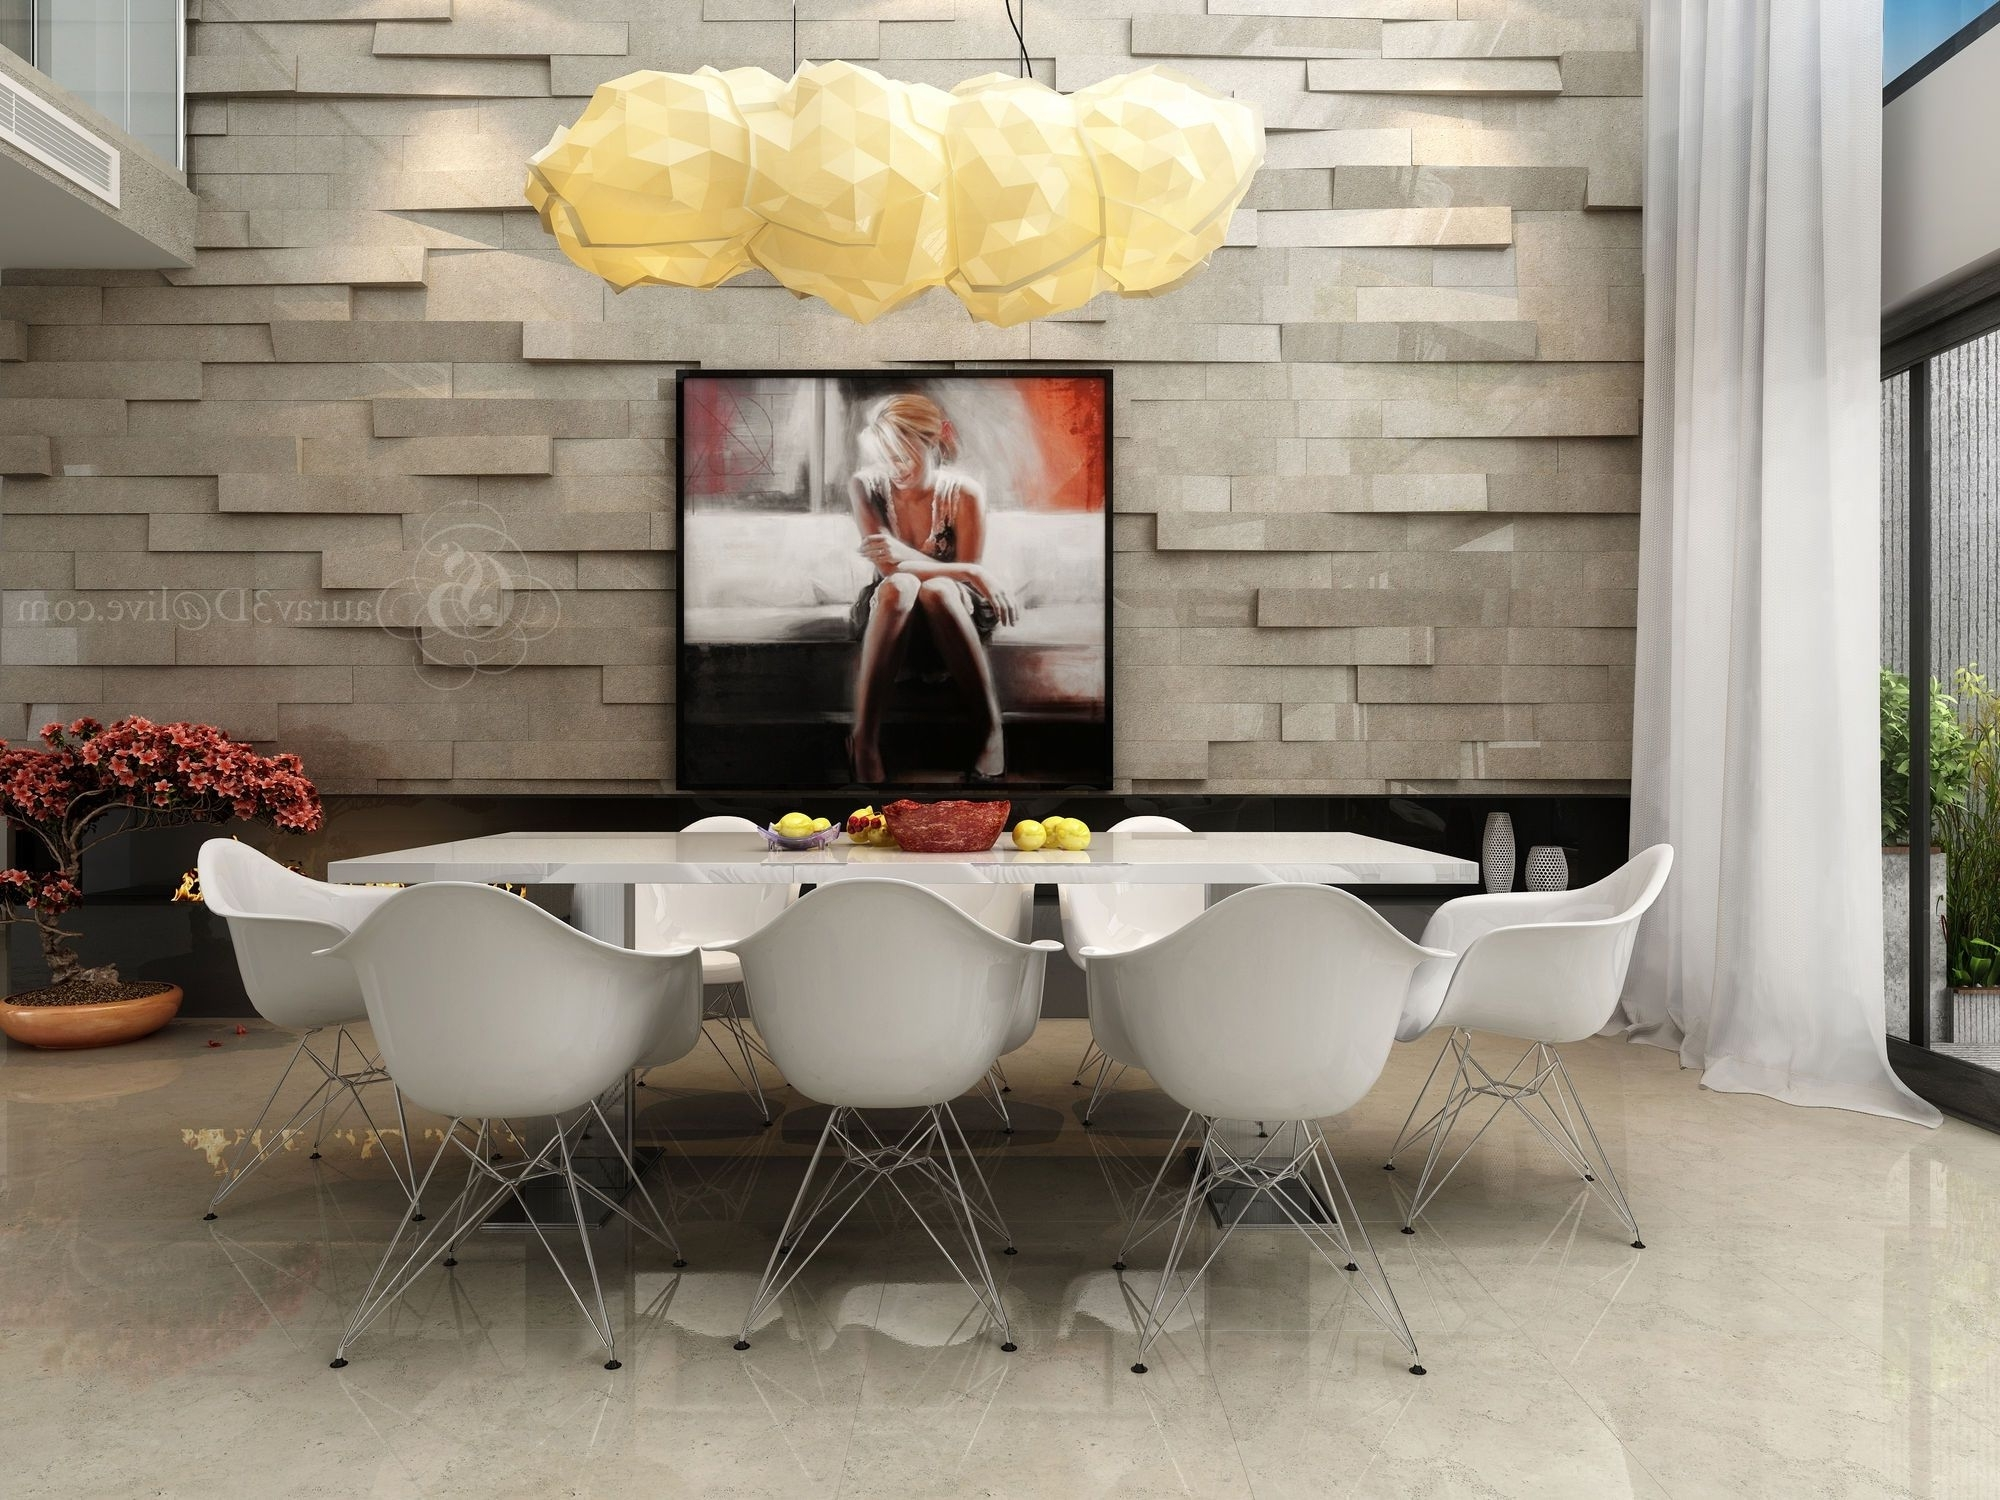 The Splendid Modern White Dining Suite Has Extruded Feature Walls Regarding Well Liked White Dining Suites (View 18 of 25)